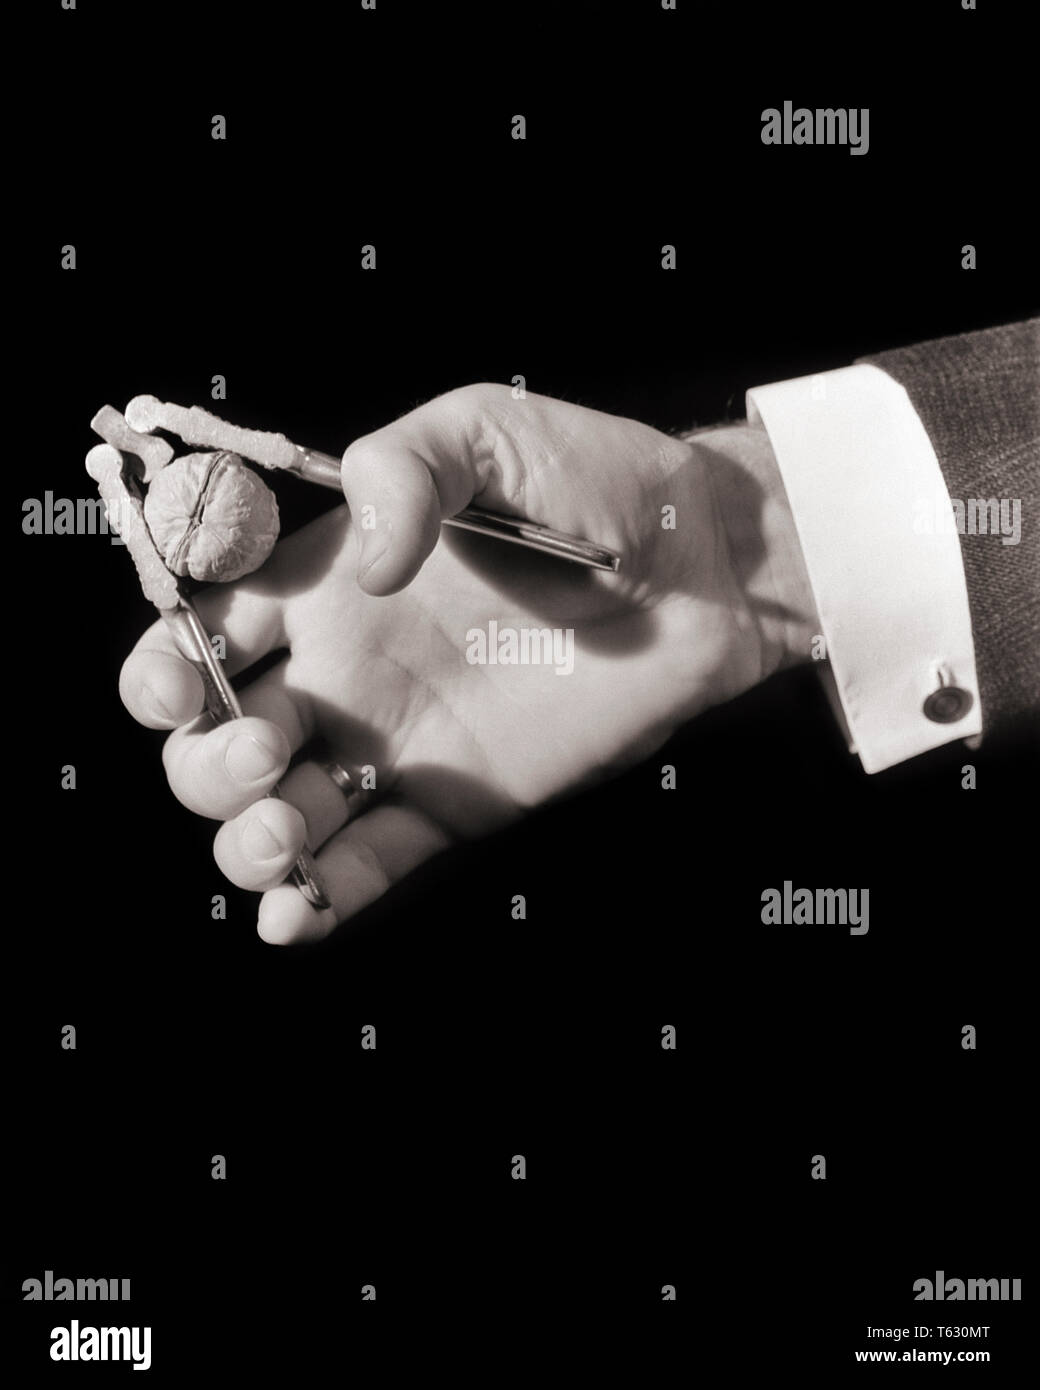 1930s MALE HANDS CRACKING WALNUT WITH METAL HAND-HELD CRACKER CRACKING TOOL - s8638 HAR001 HARS HAND-HELD HANDS ONLY HAR001 OLD FASHIONED REPRESENTATION - Stock Image